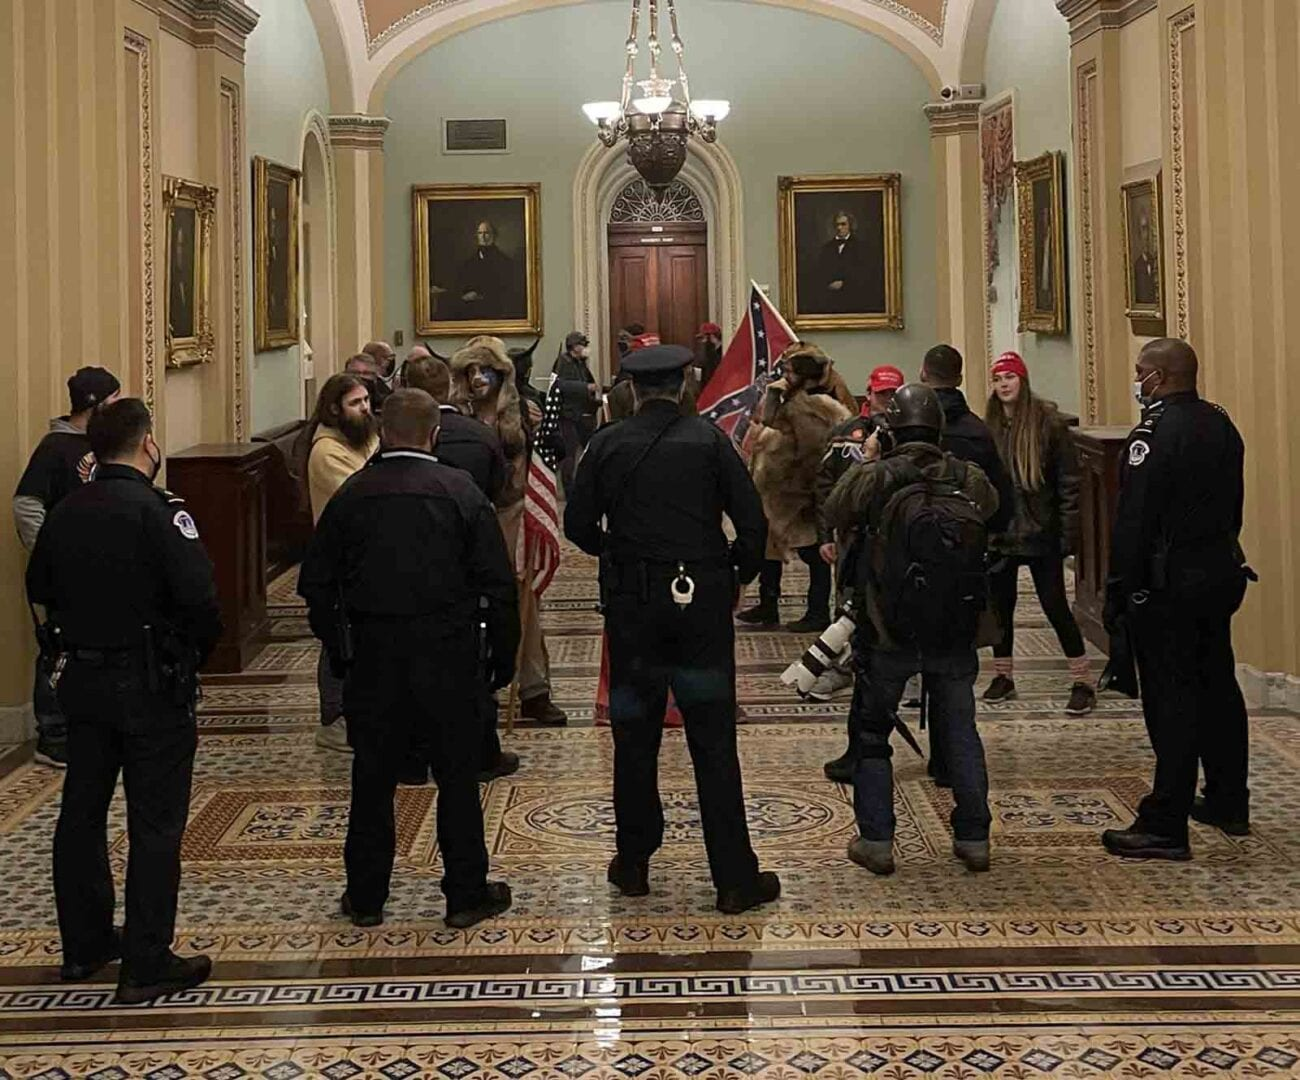 Trump supporters are storming the Capitol Building. Here are the details we currently have on the quickly developing situation.